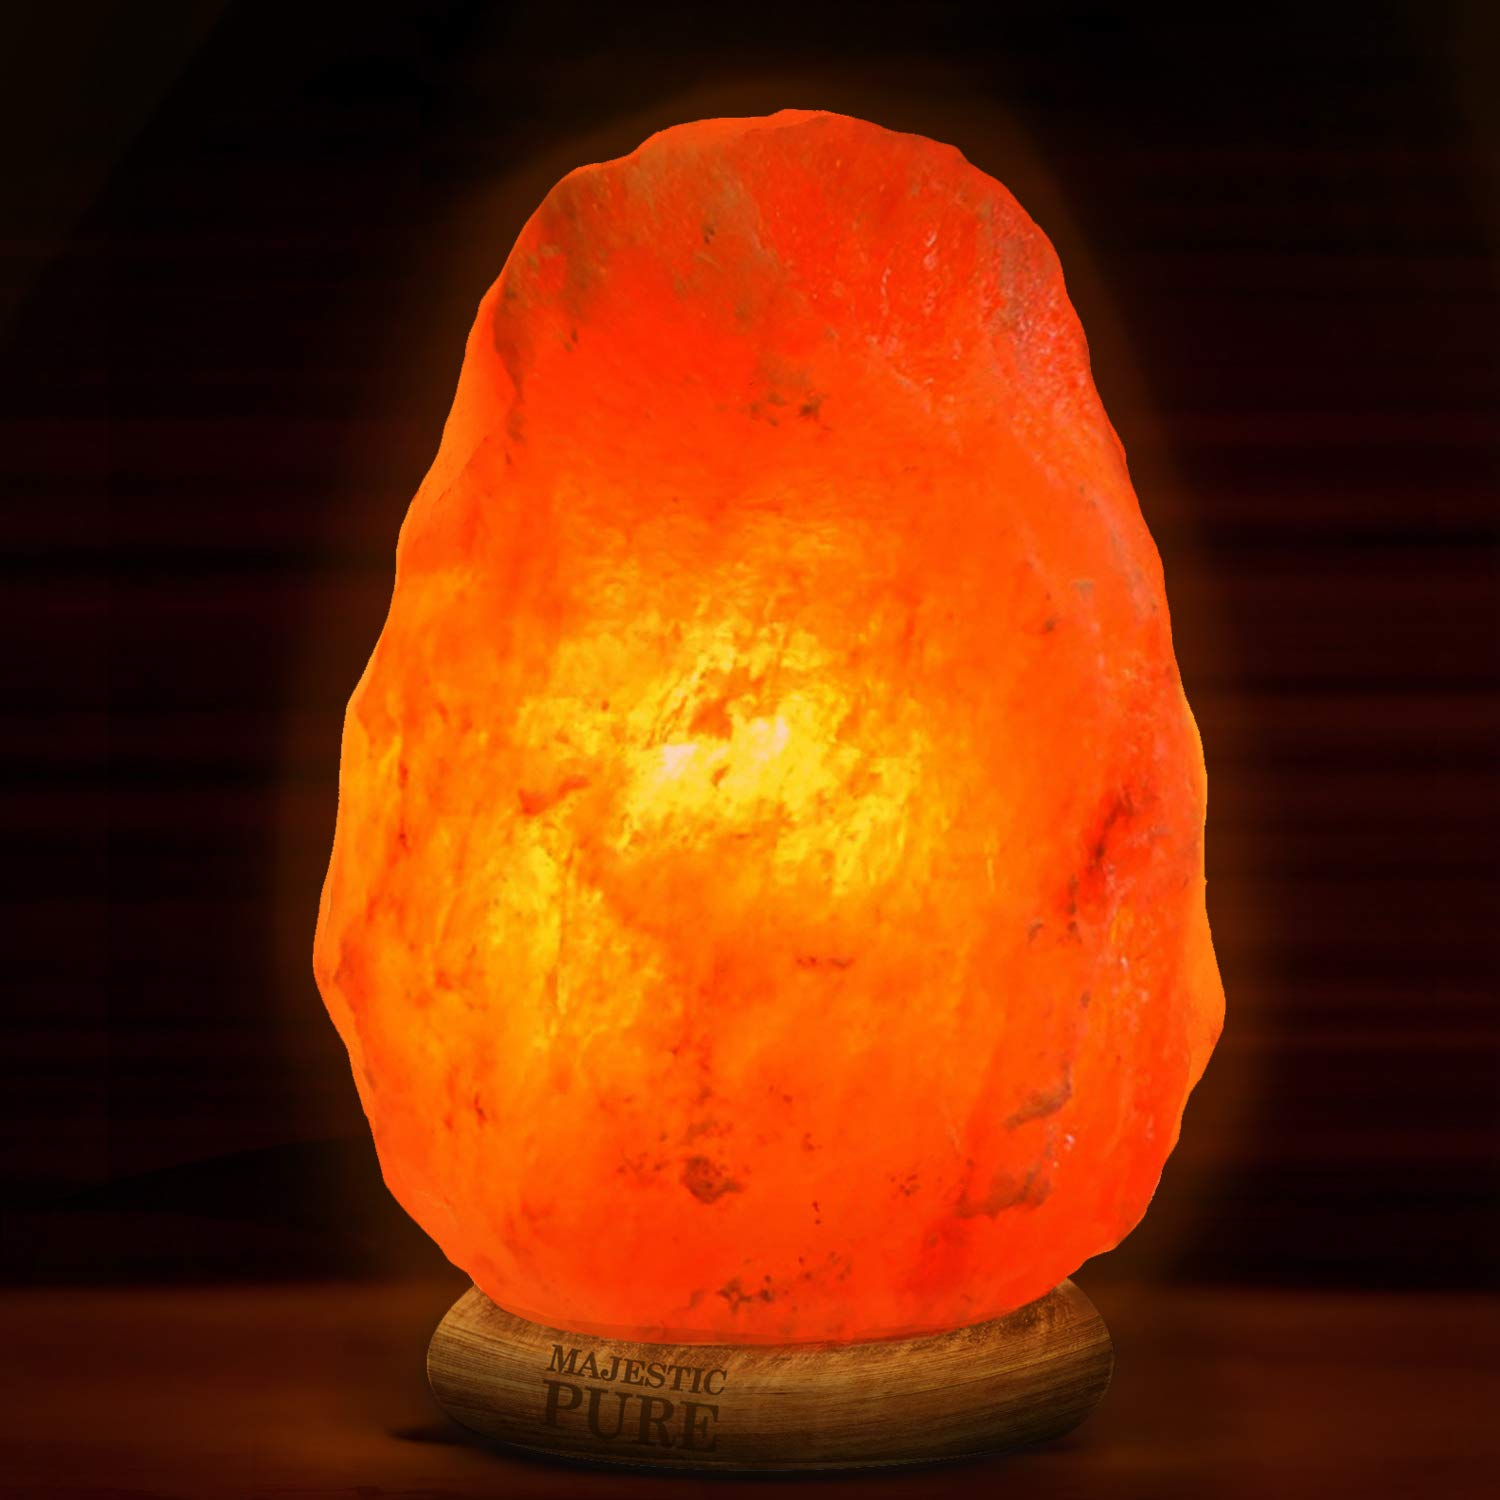 Majestic Pure Himalayan Salt Lamp - Natural Pink Salt Rock Lamp, Hand Carved, Wooden Base, Brightness Dimmer, 3 Bulbs, UL-Listed Cord and Gift Box, 8-11 lbs by Majestic Pure (Image #6)